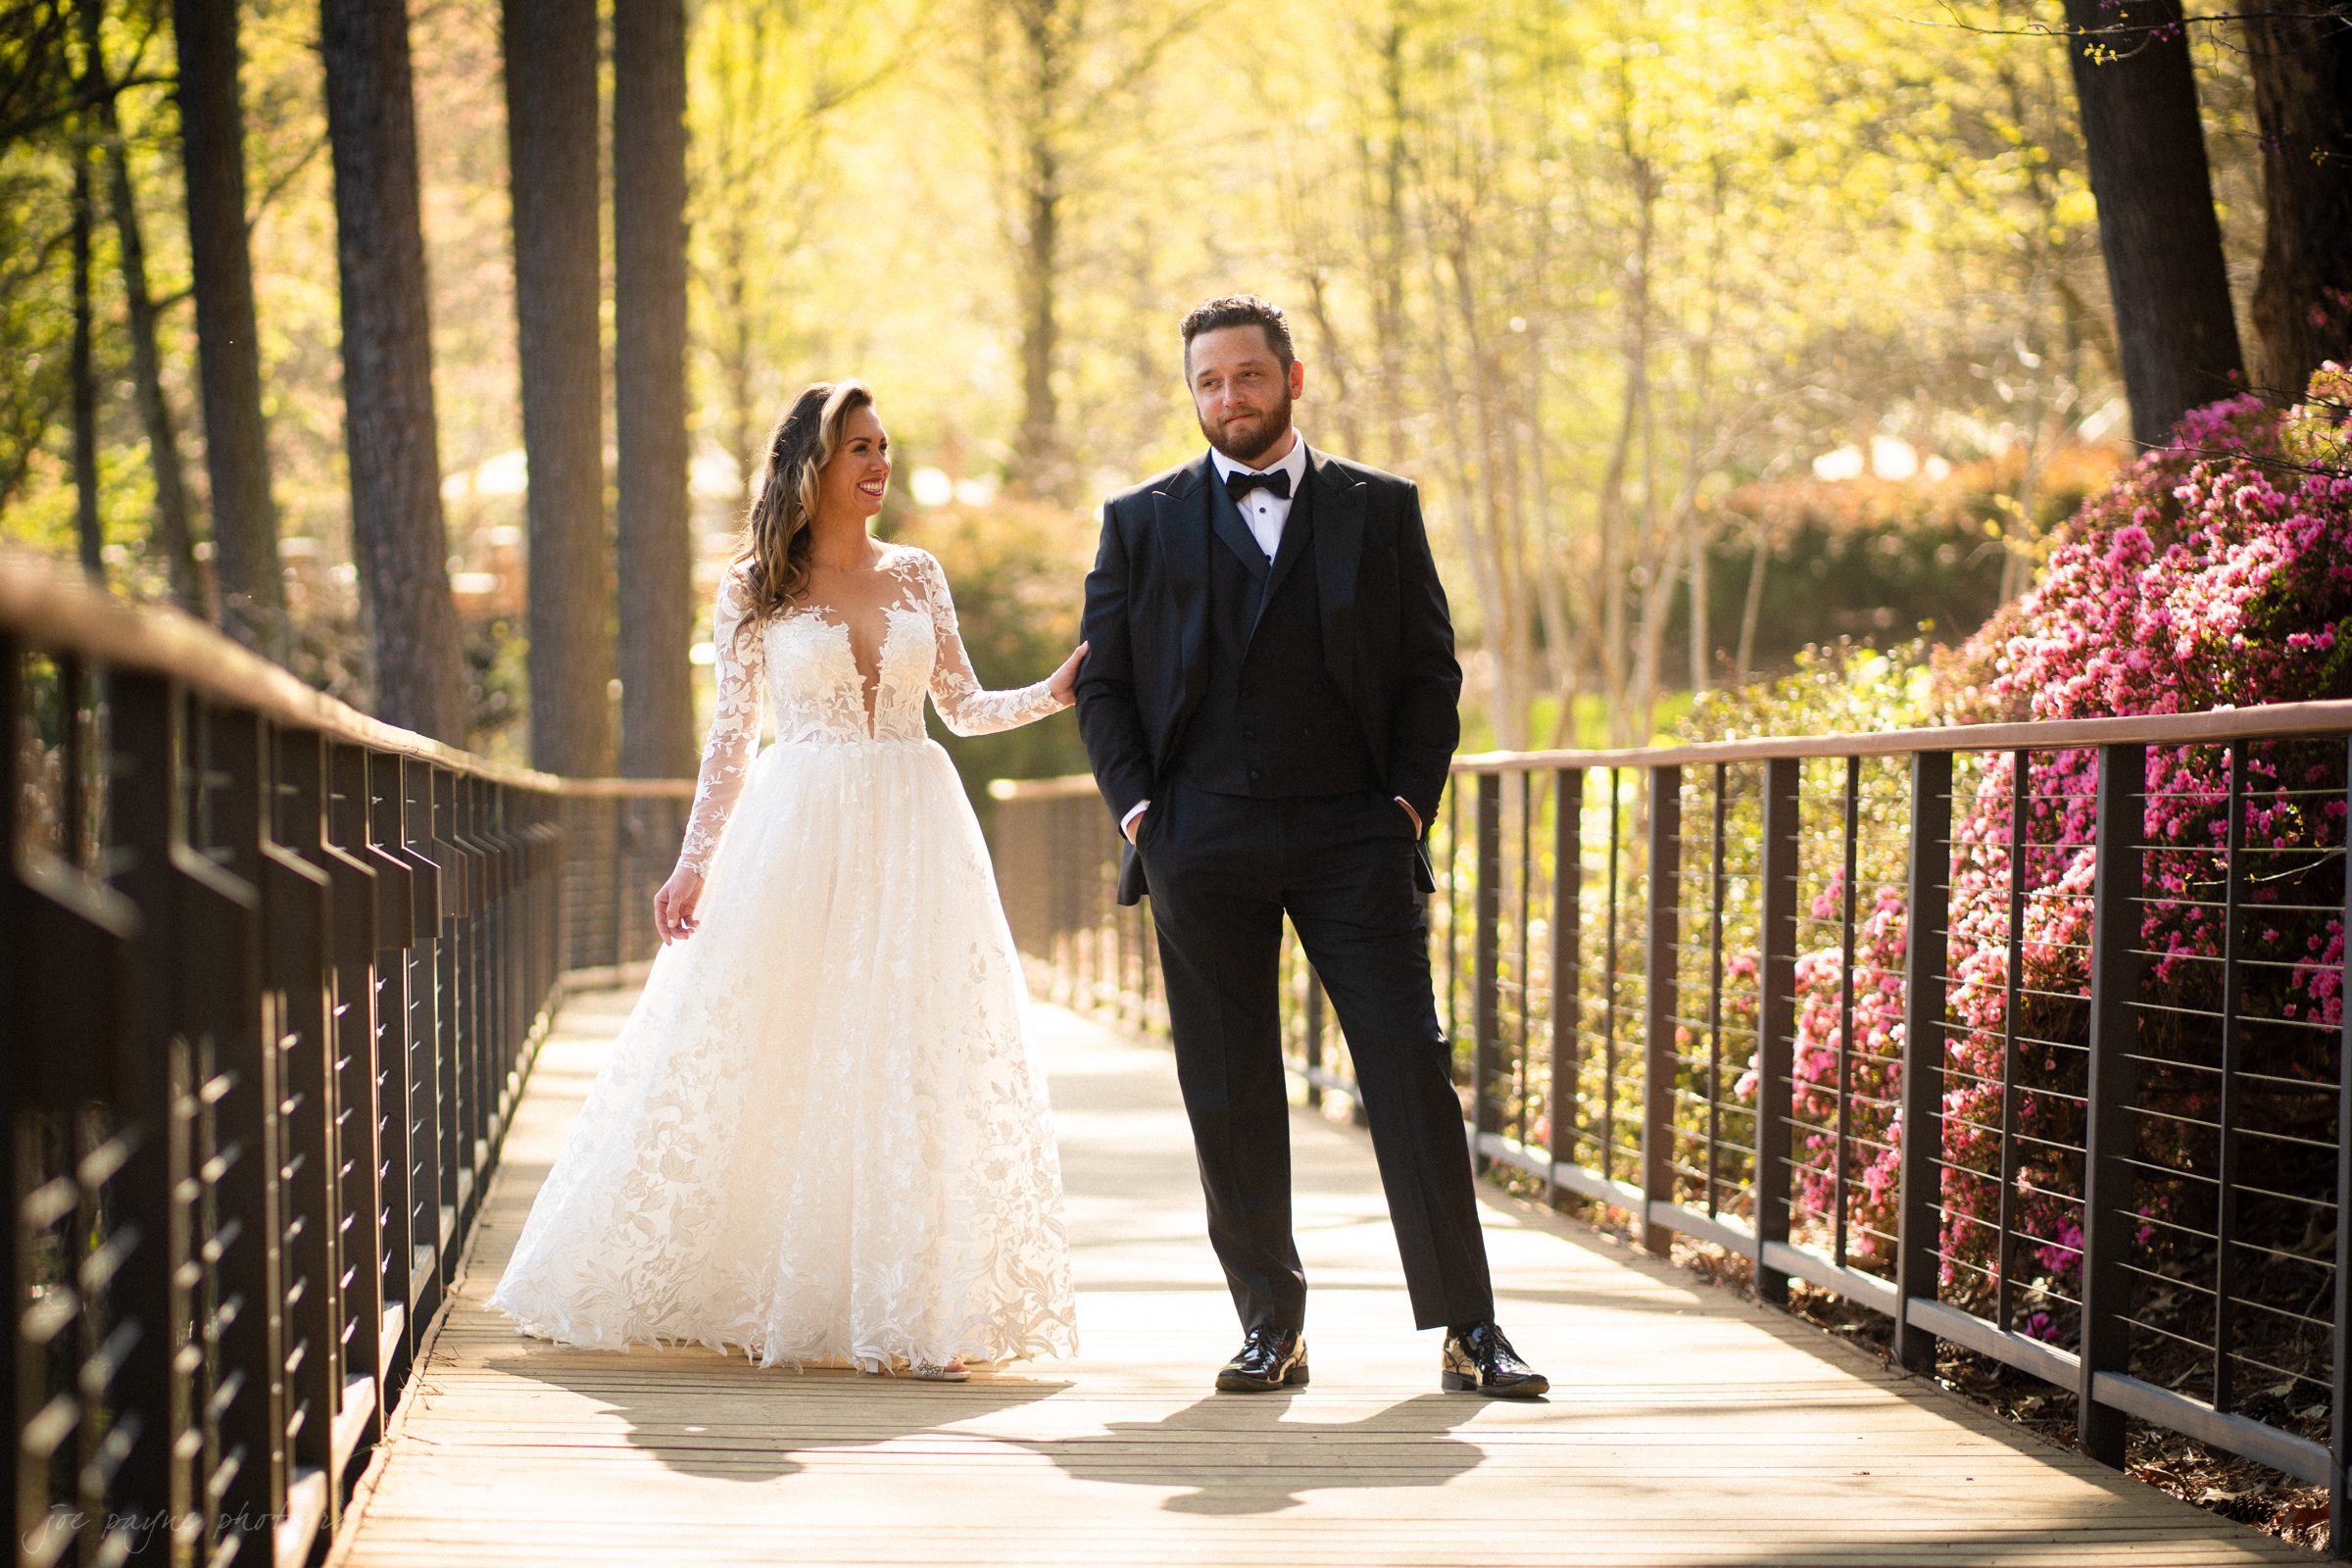 umstead hotel park wedding photography brittany harrison 10